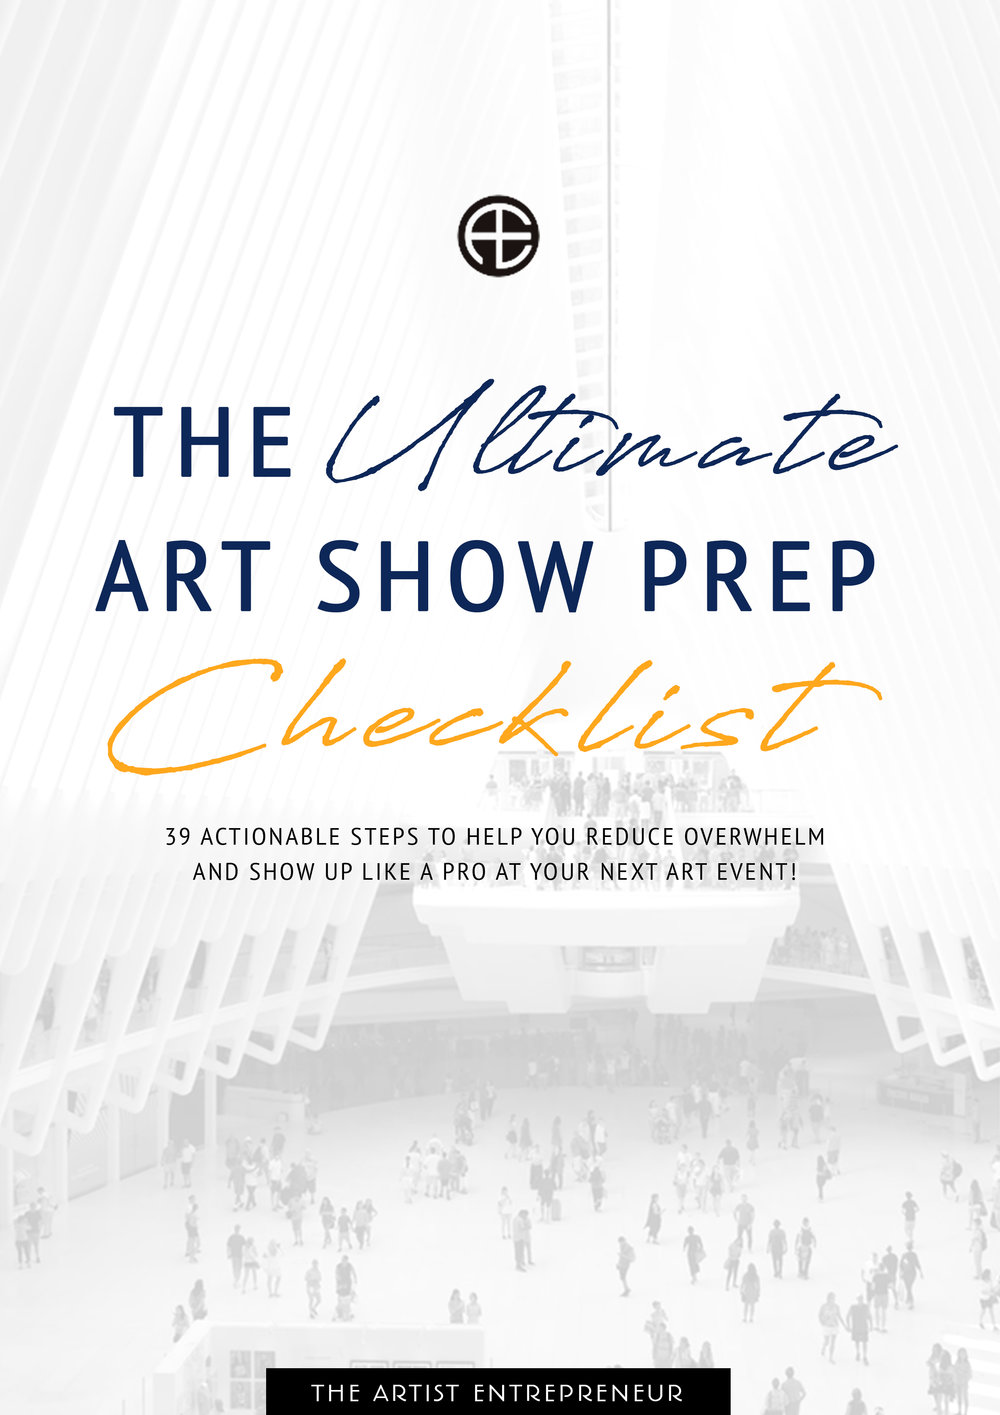 The ultimate art show prep checklist_the artist entrepreneur_catherine orer